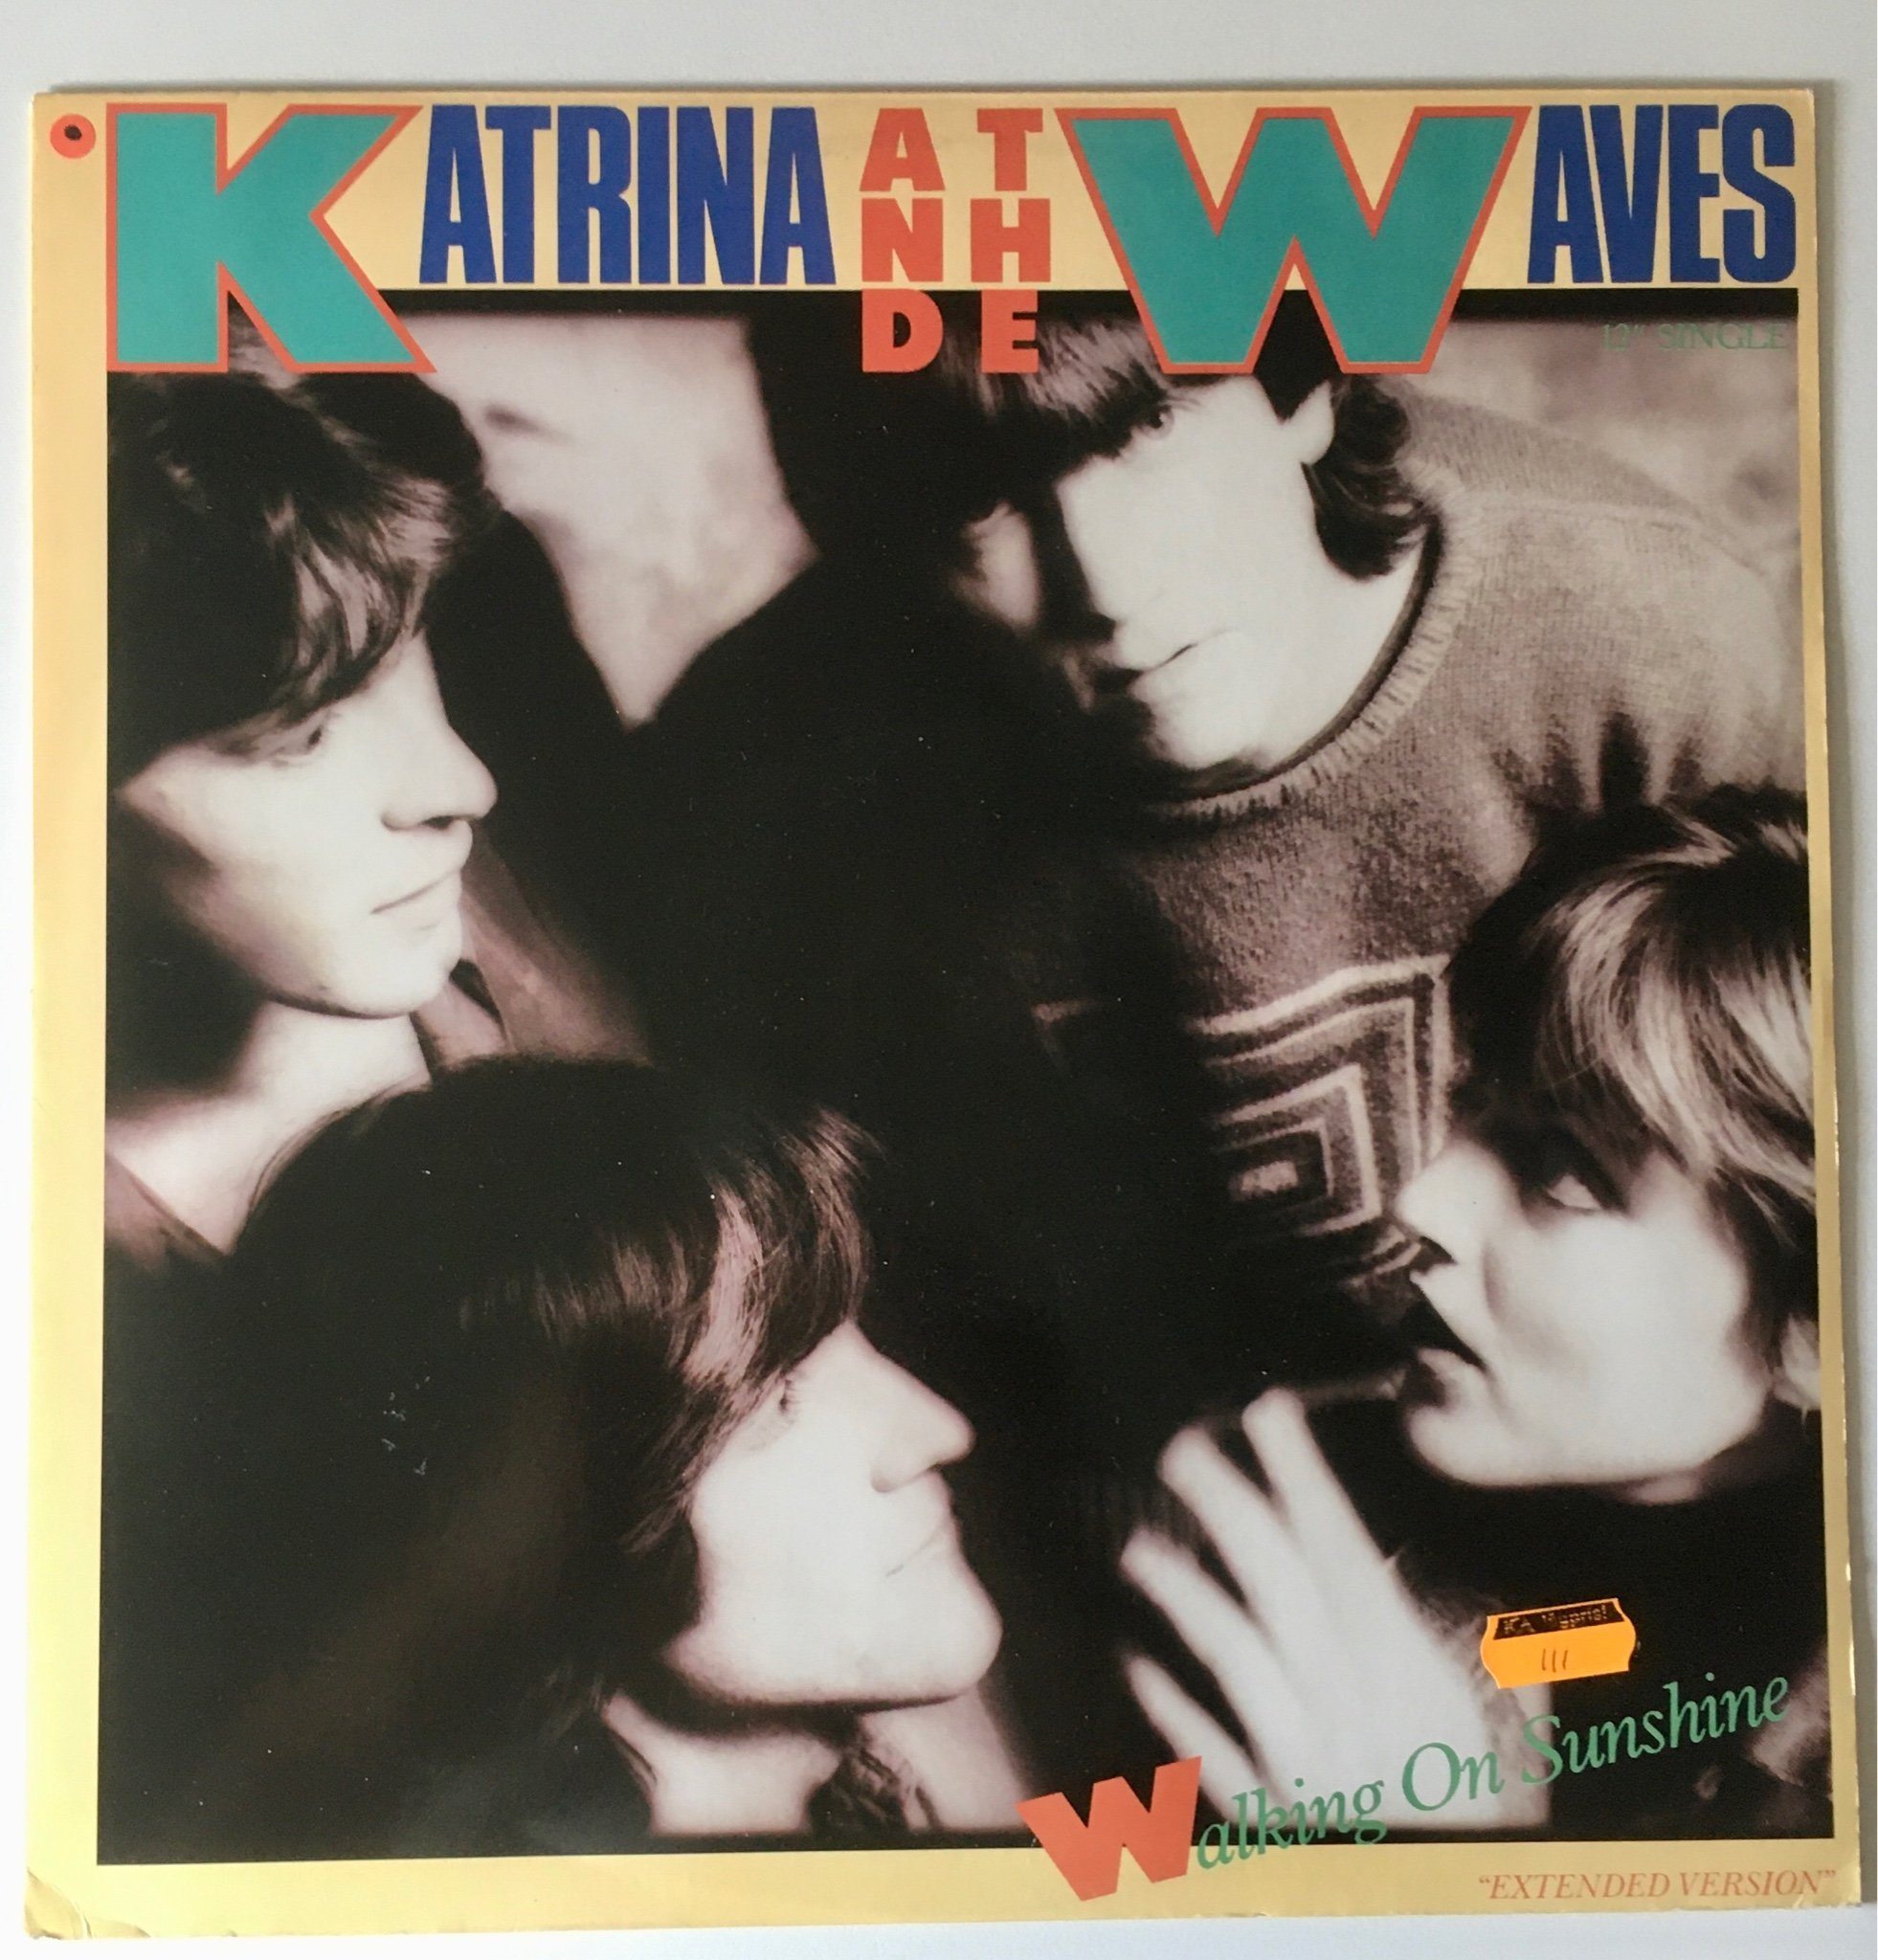 "KATRINA AND THE WAVES - WALKING ON SUNSHINE 12"" maxi (Rare) Dj 80 tal"